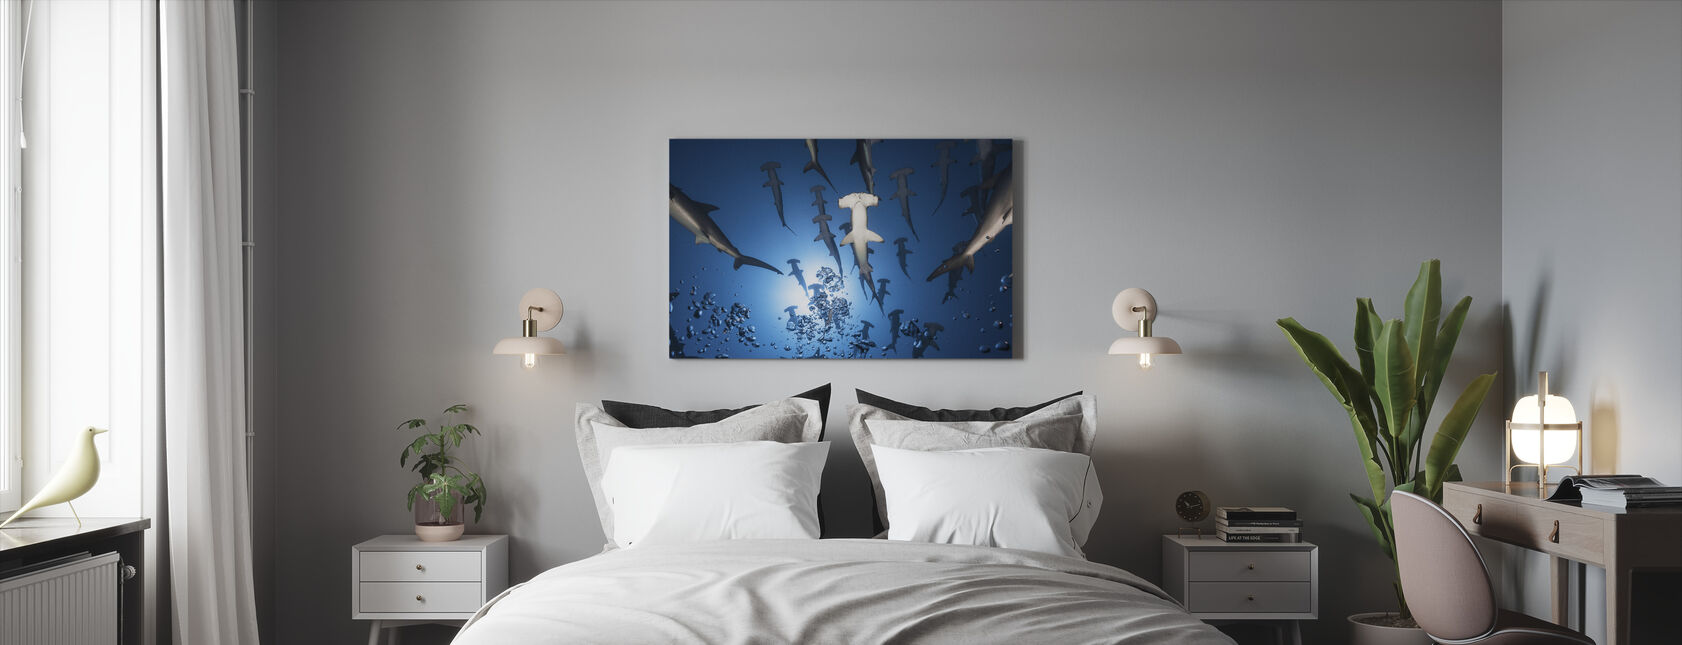 Hammerhead Shark - Canvas print - Bedroom